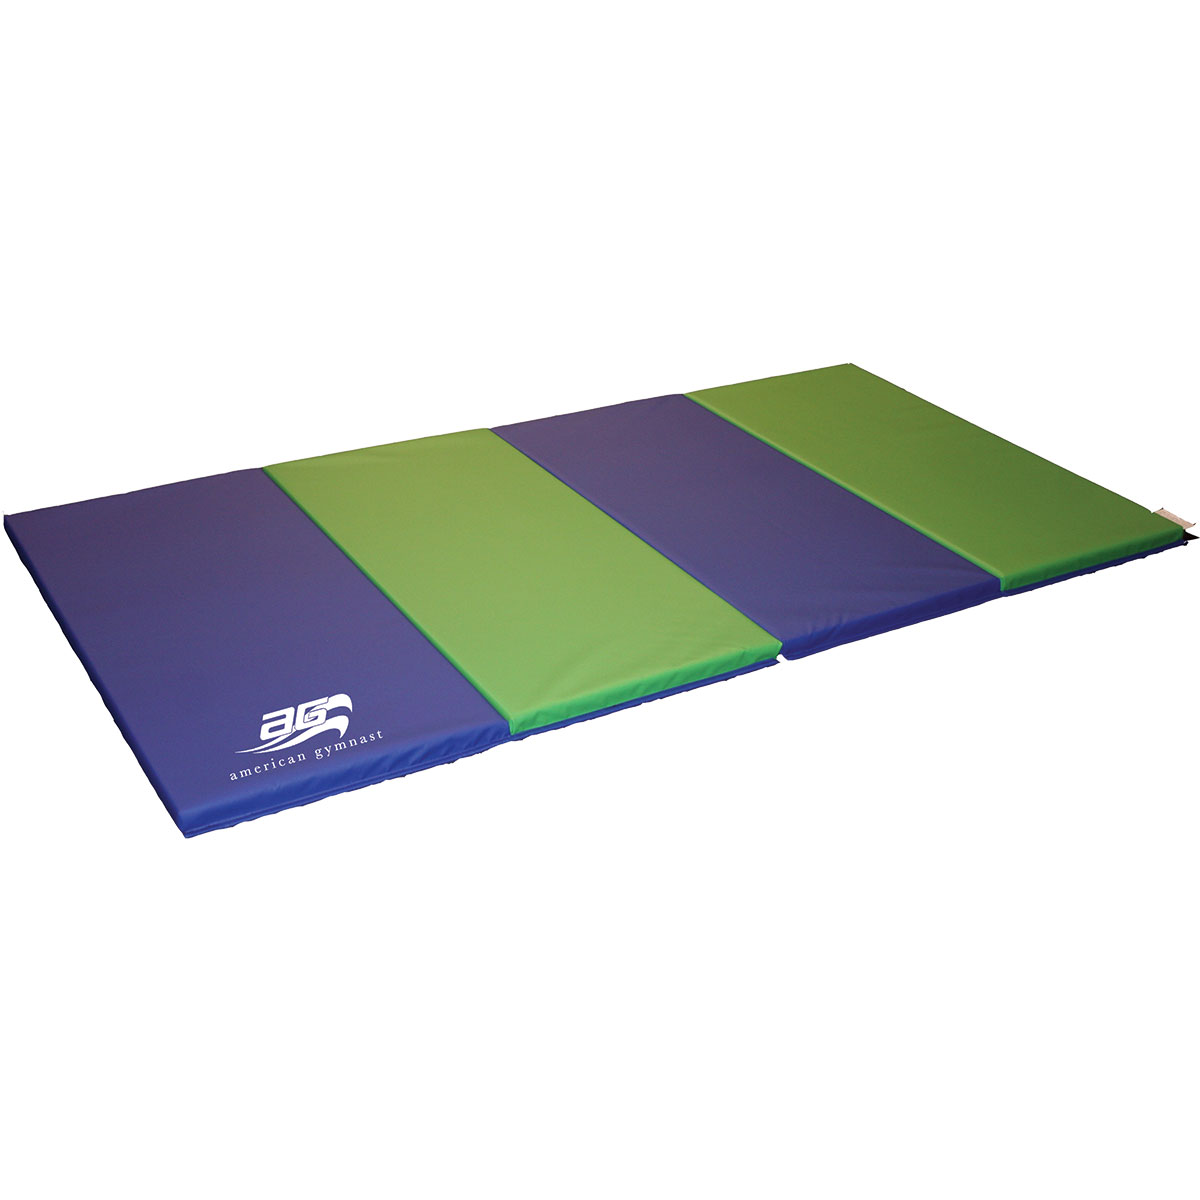 x blue gym itm gymnastics tumbling fitness mat exercise folding panel thick